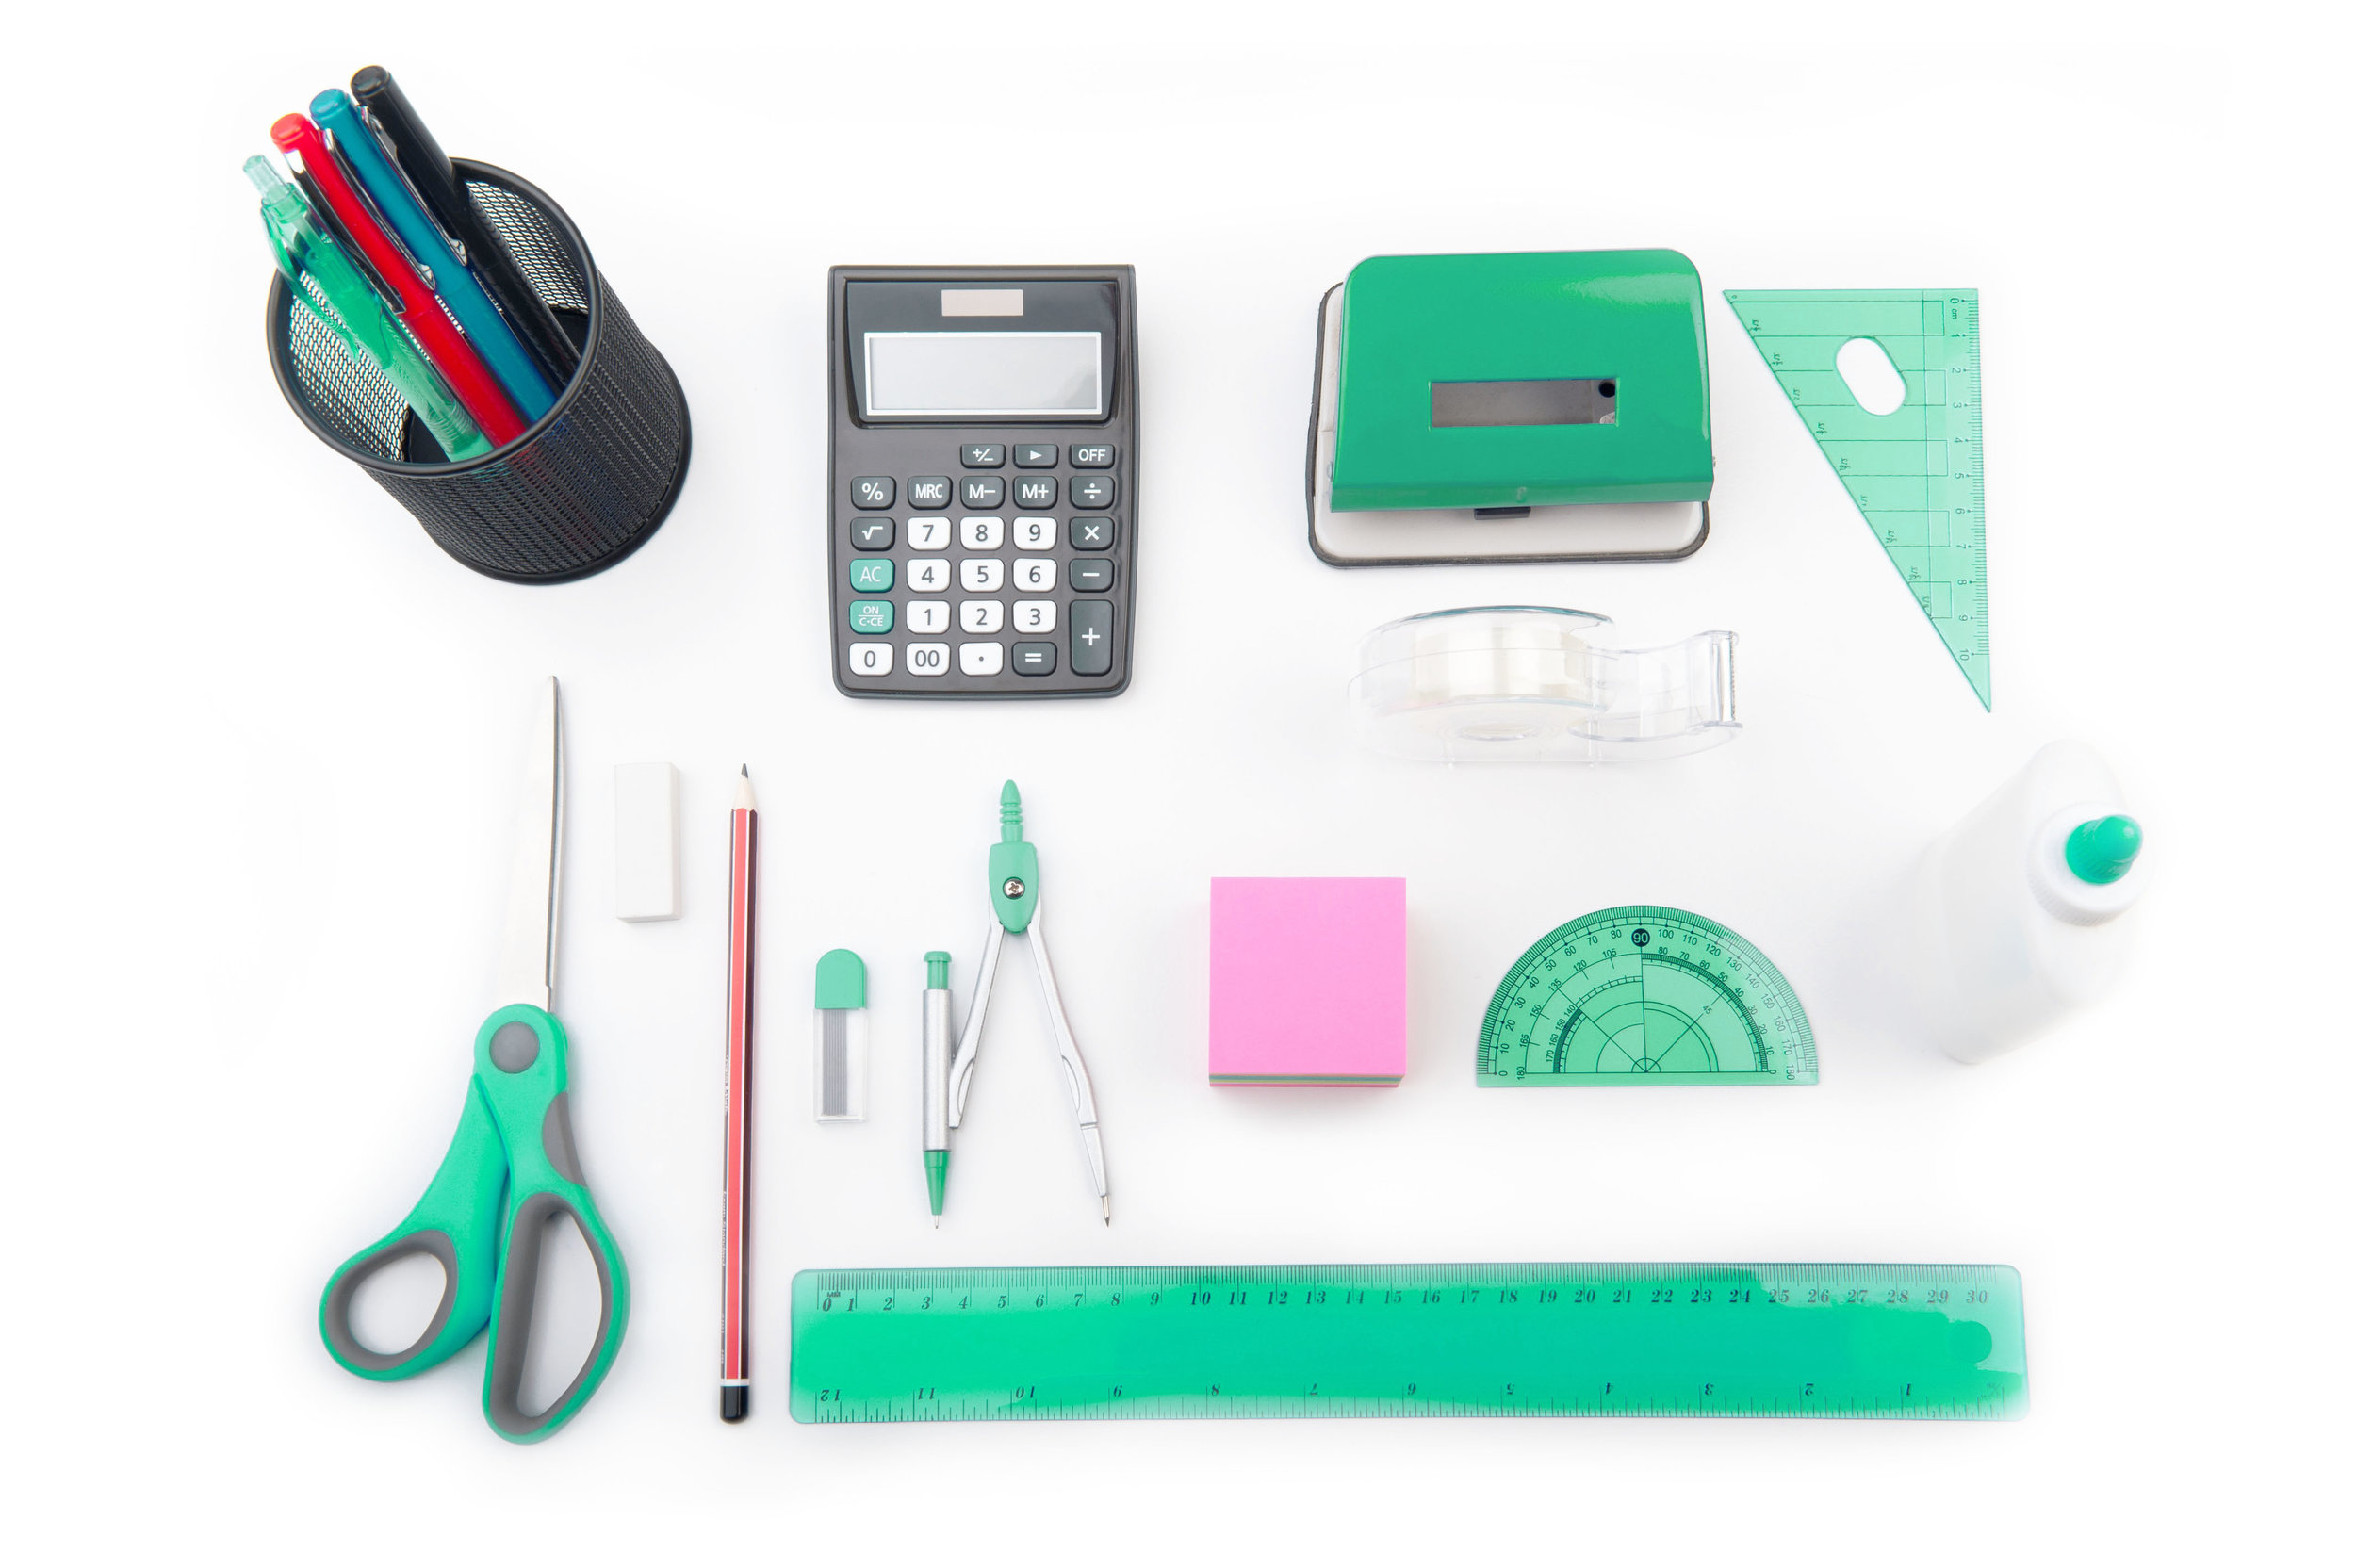 The-BEST-prices-on-Office-Supplies-from-Indoff-Office-Interiors-ALWAYS.jpg